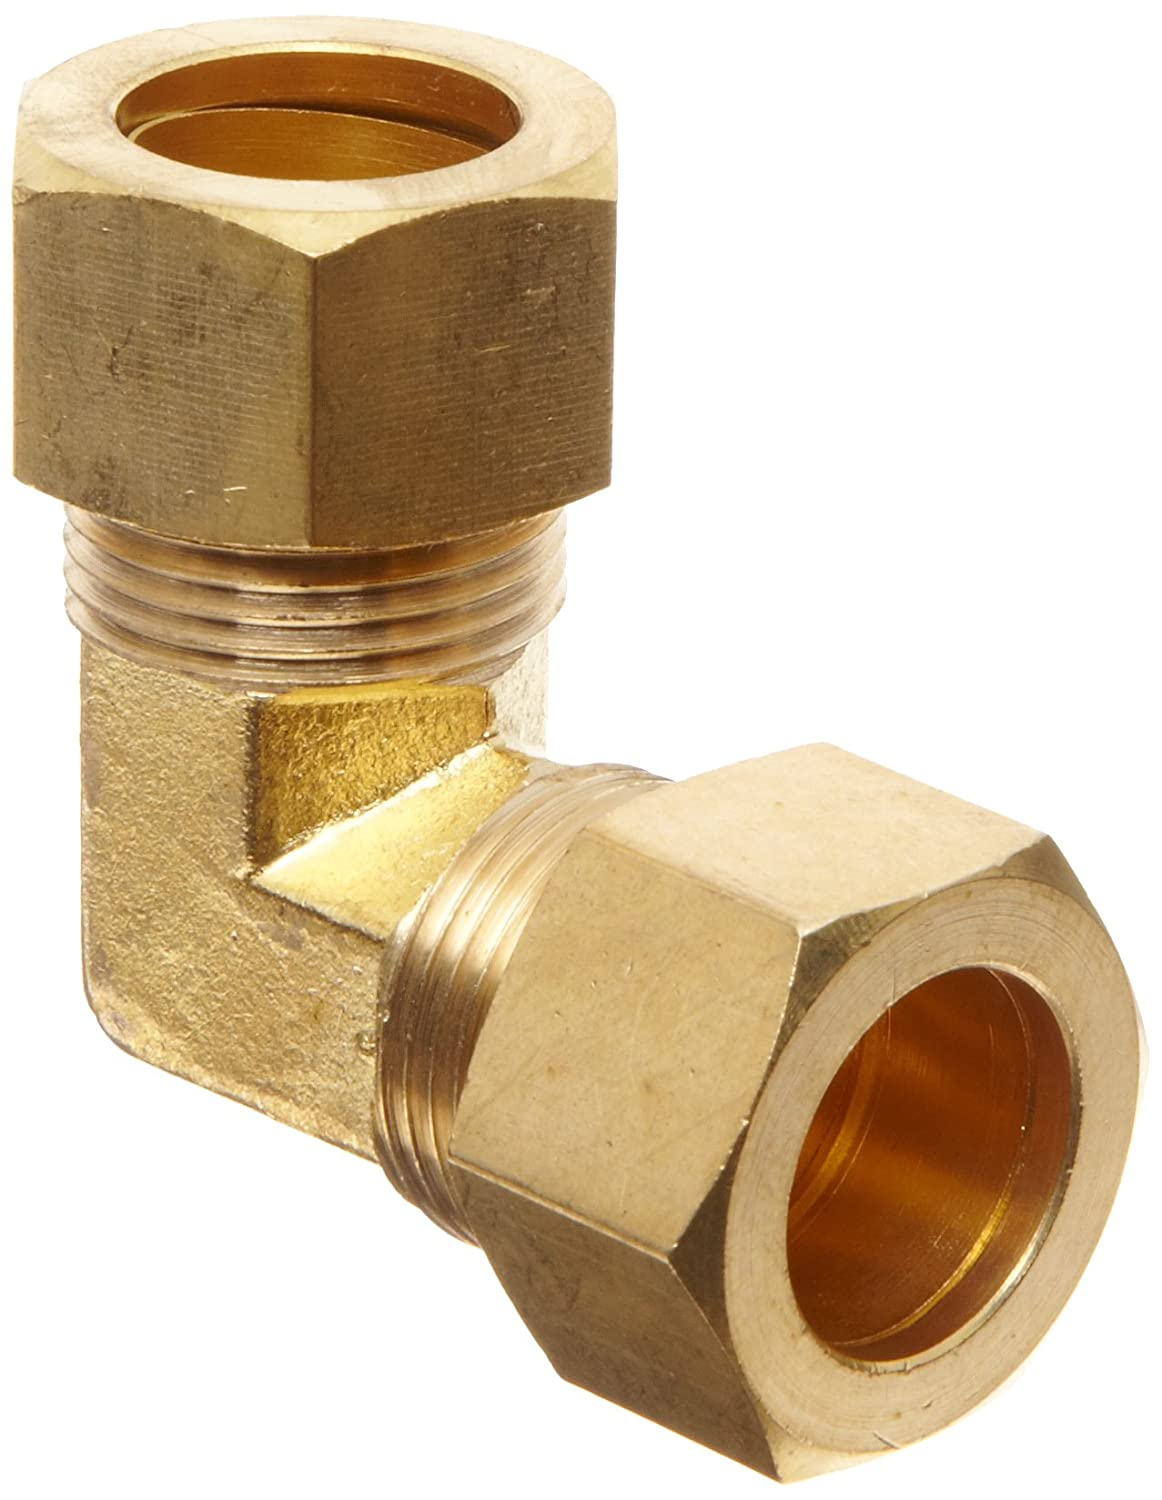 Elbow 3//4 x 3//4 Compression Anderson Metals Brass Tube Fitting